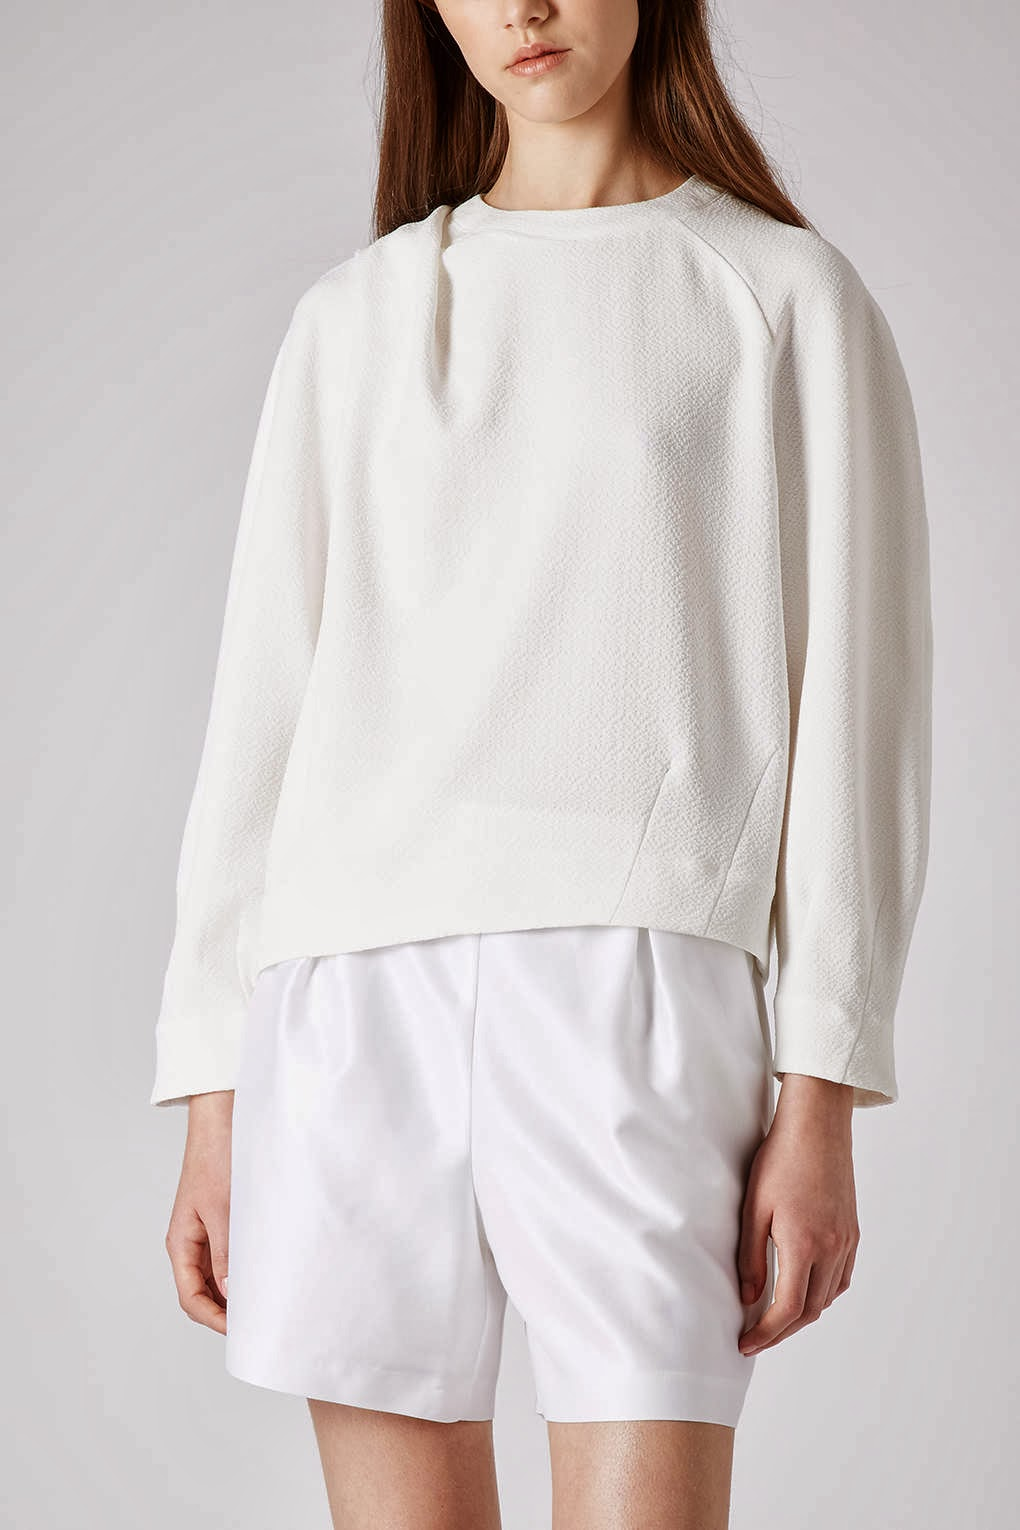 topshop white jumper